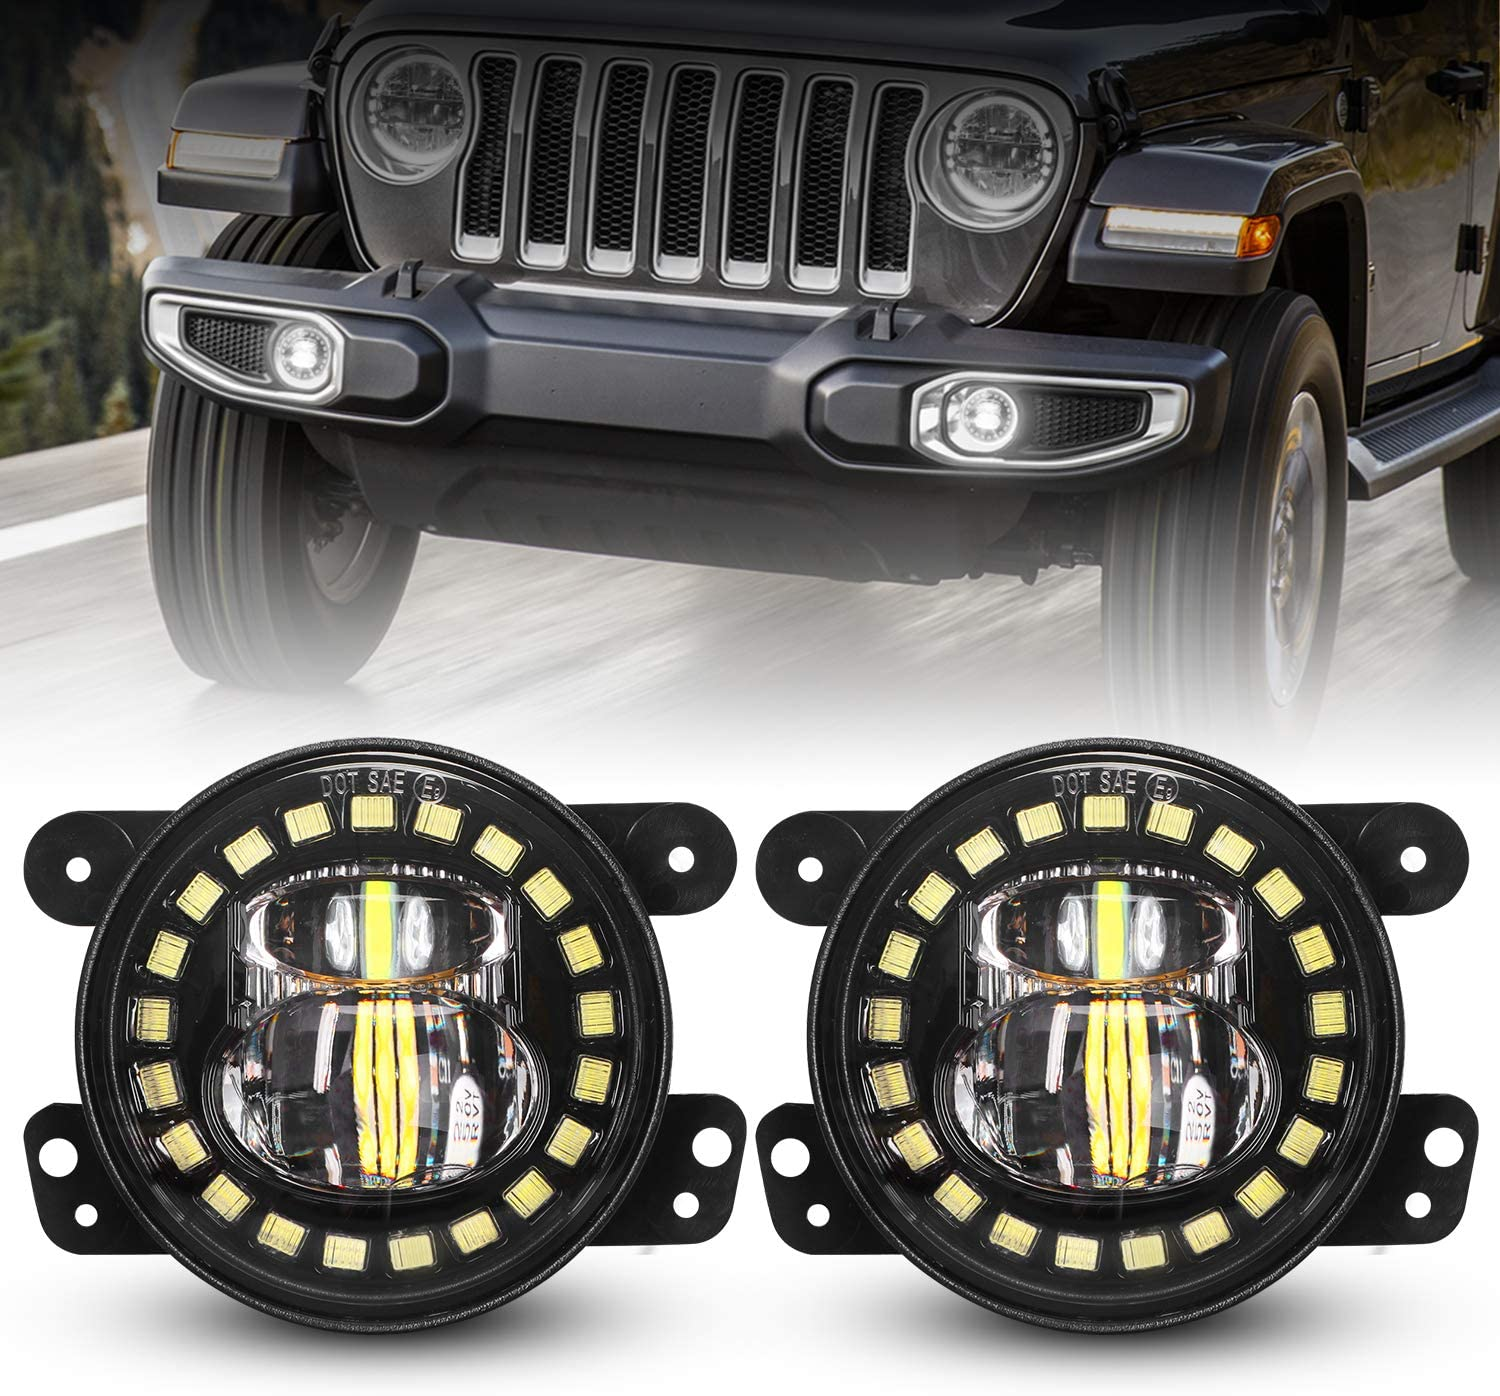 DOT Approved Black 4 Inch LED Fog Ranking TOP14 Ring fo Halo White Quality inspection Lights with